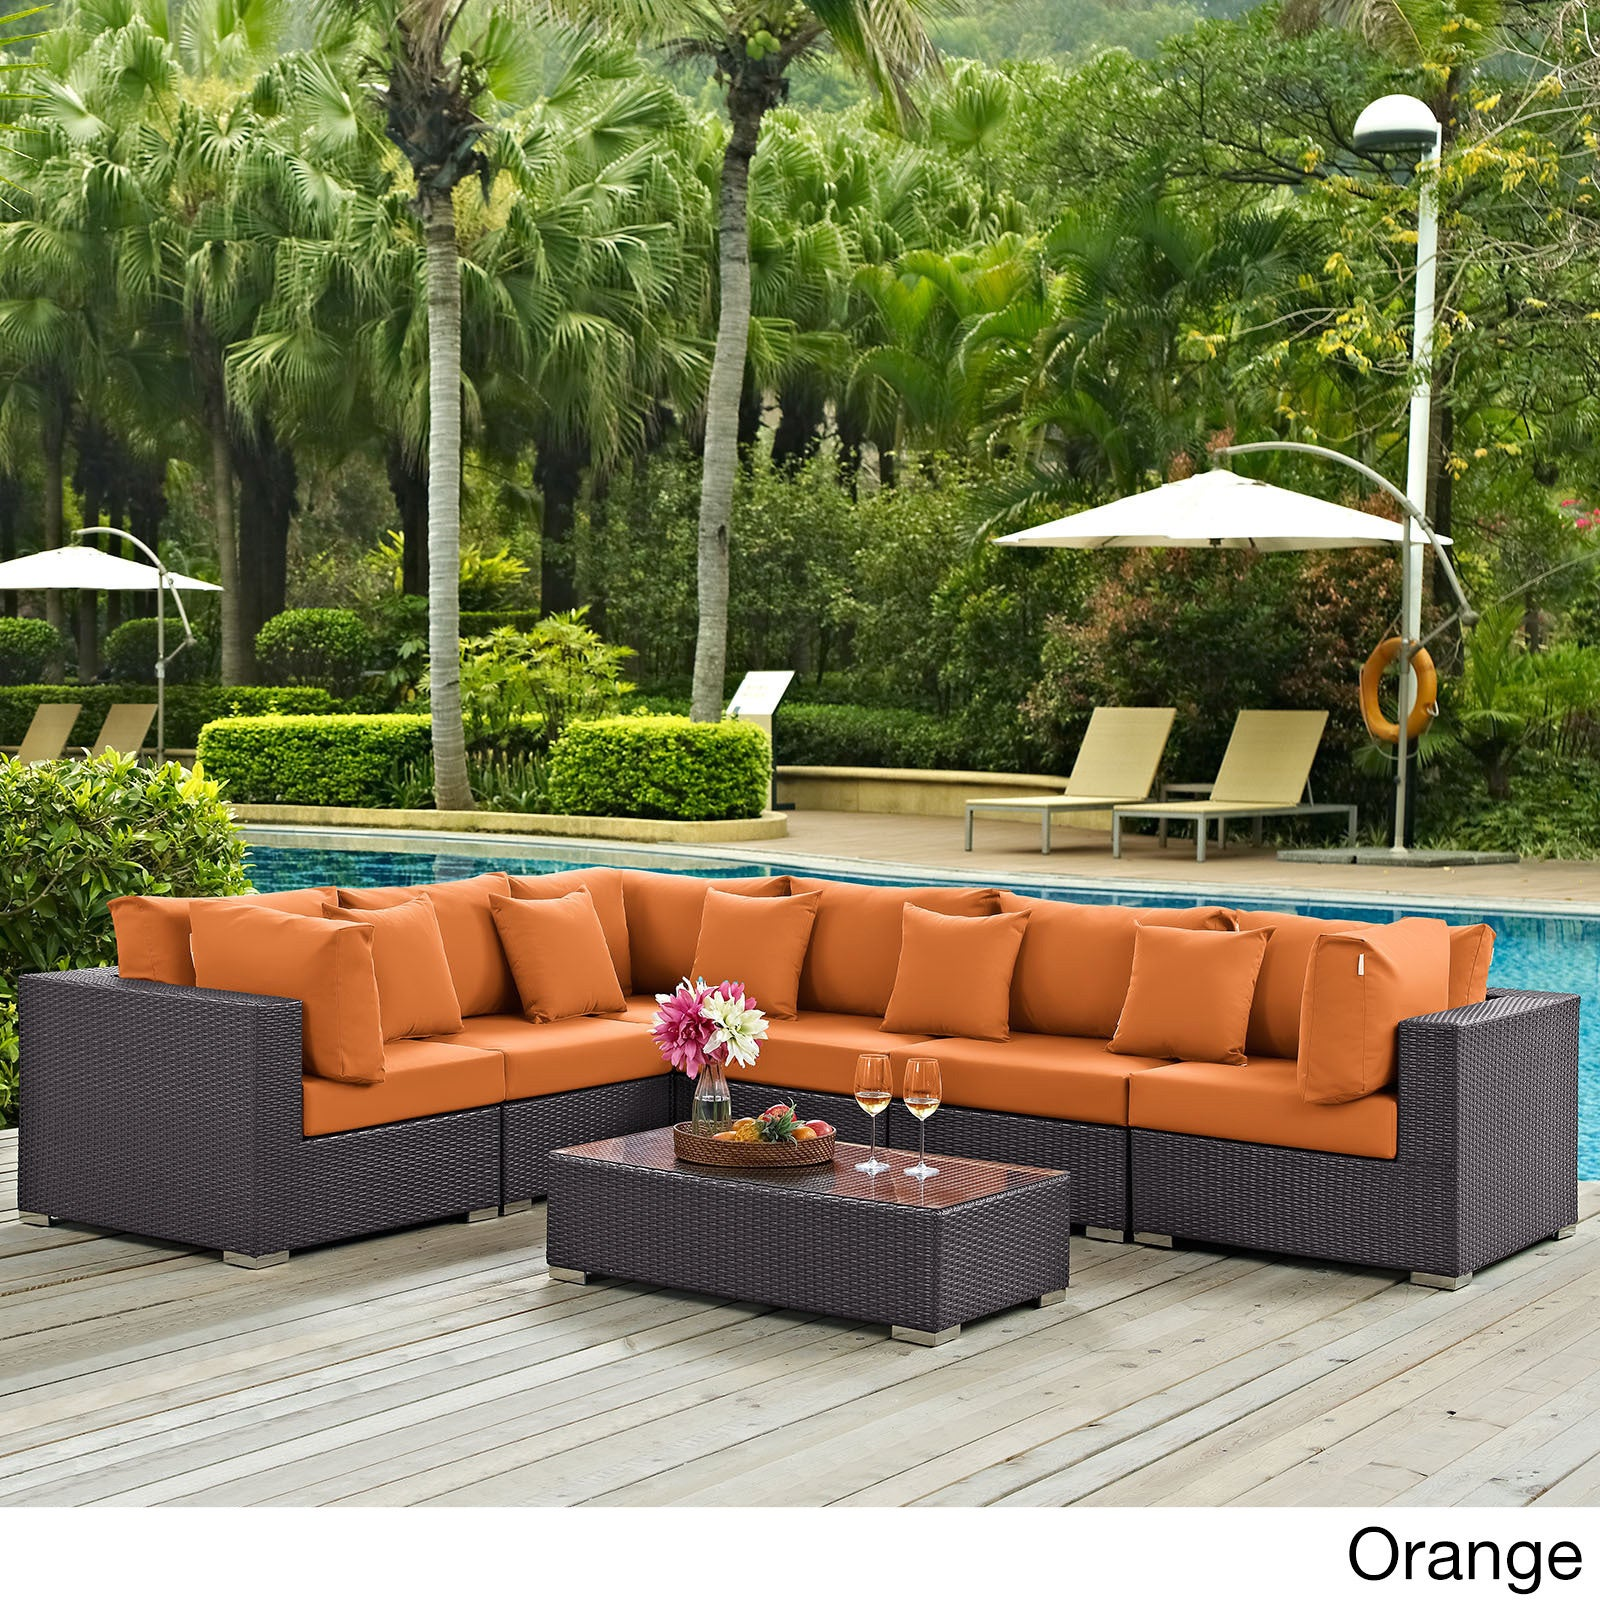 pallets unique sofa outdoor ways cover sale couple tables furniture and to tackle patio sectional pieces into of diy benches design turn wood